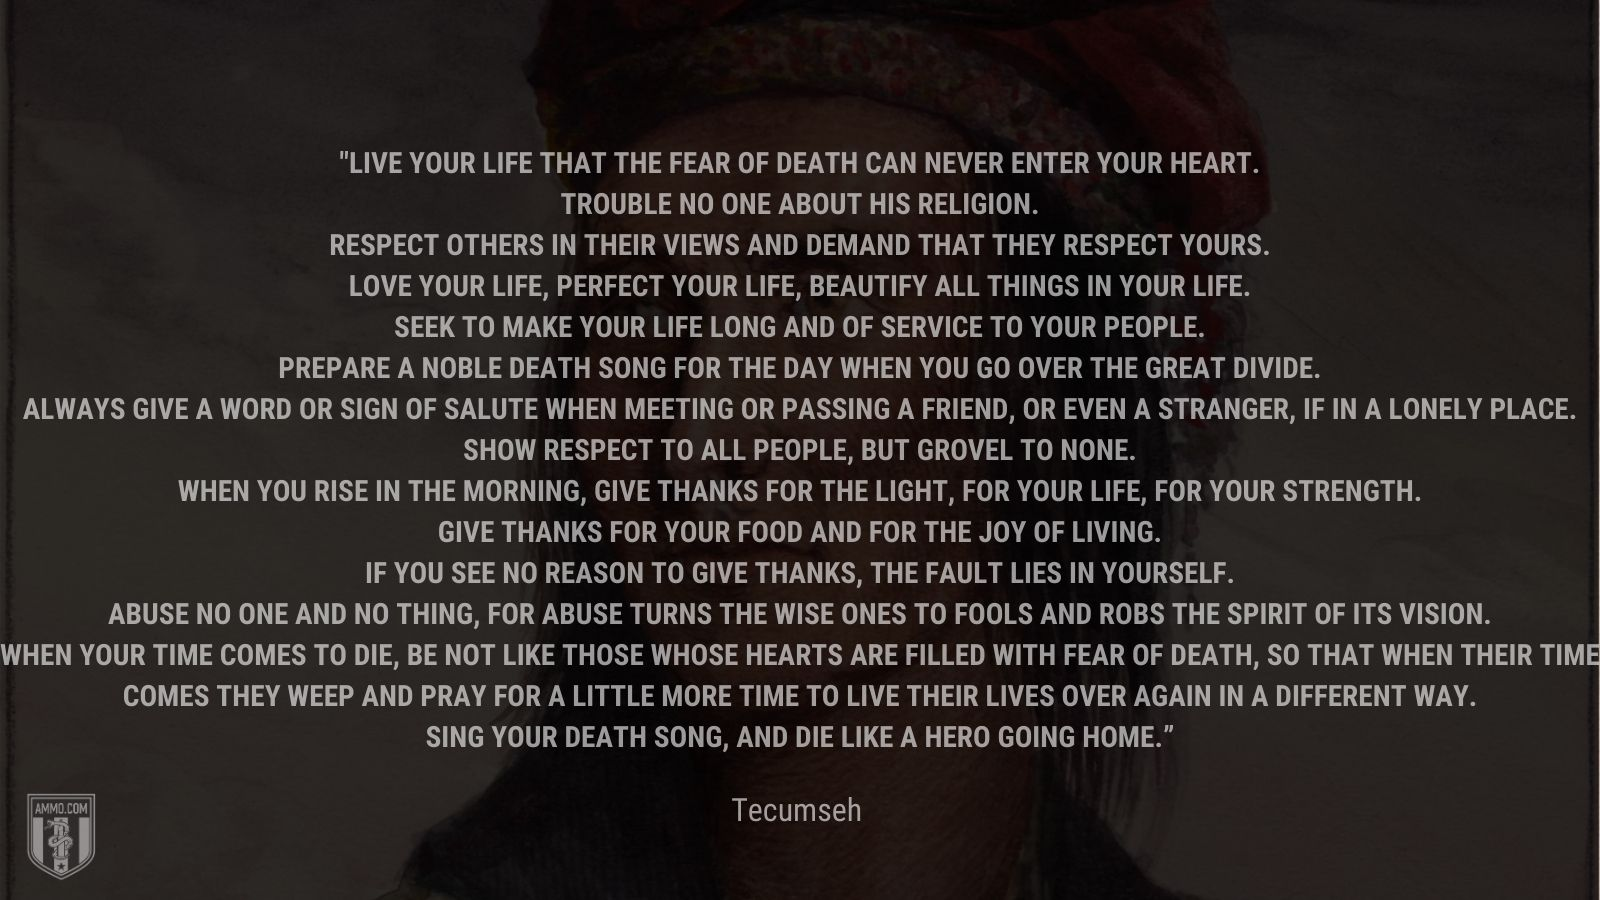 """""""Live your life that the fear of death can never enter your heart.Trouble no one about his religion. Respect others in their views and demand that they respect yours.Love your life, perfect your life, beautify all things in your life. Seek to make your life long and of service to your people. Prepare a noble death song for the day when you go over the great divide. Always give a word or sign of salute when meeting or passing a friend, or even a stranger, if in a lonely place.Show respect to all people, but grovel to none. When you rise in the morning, give thanks for the light, for your life, for your strength. Give thanks for your food and for the joy of living. If you see no reason to give thanks, the fault lies in yourself. Abuse no one and no thing, for abuse turns the wise ones to fools and robs the spirit of its visioWhen your time comes to die, be not like those whose hearts are filled with fear of death, so that when their time comes they weep and pray for a little more time to live their lives over again in a different way. Sing your death song, and die like a hero going home."""" - Tecumseh"""